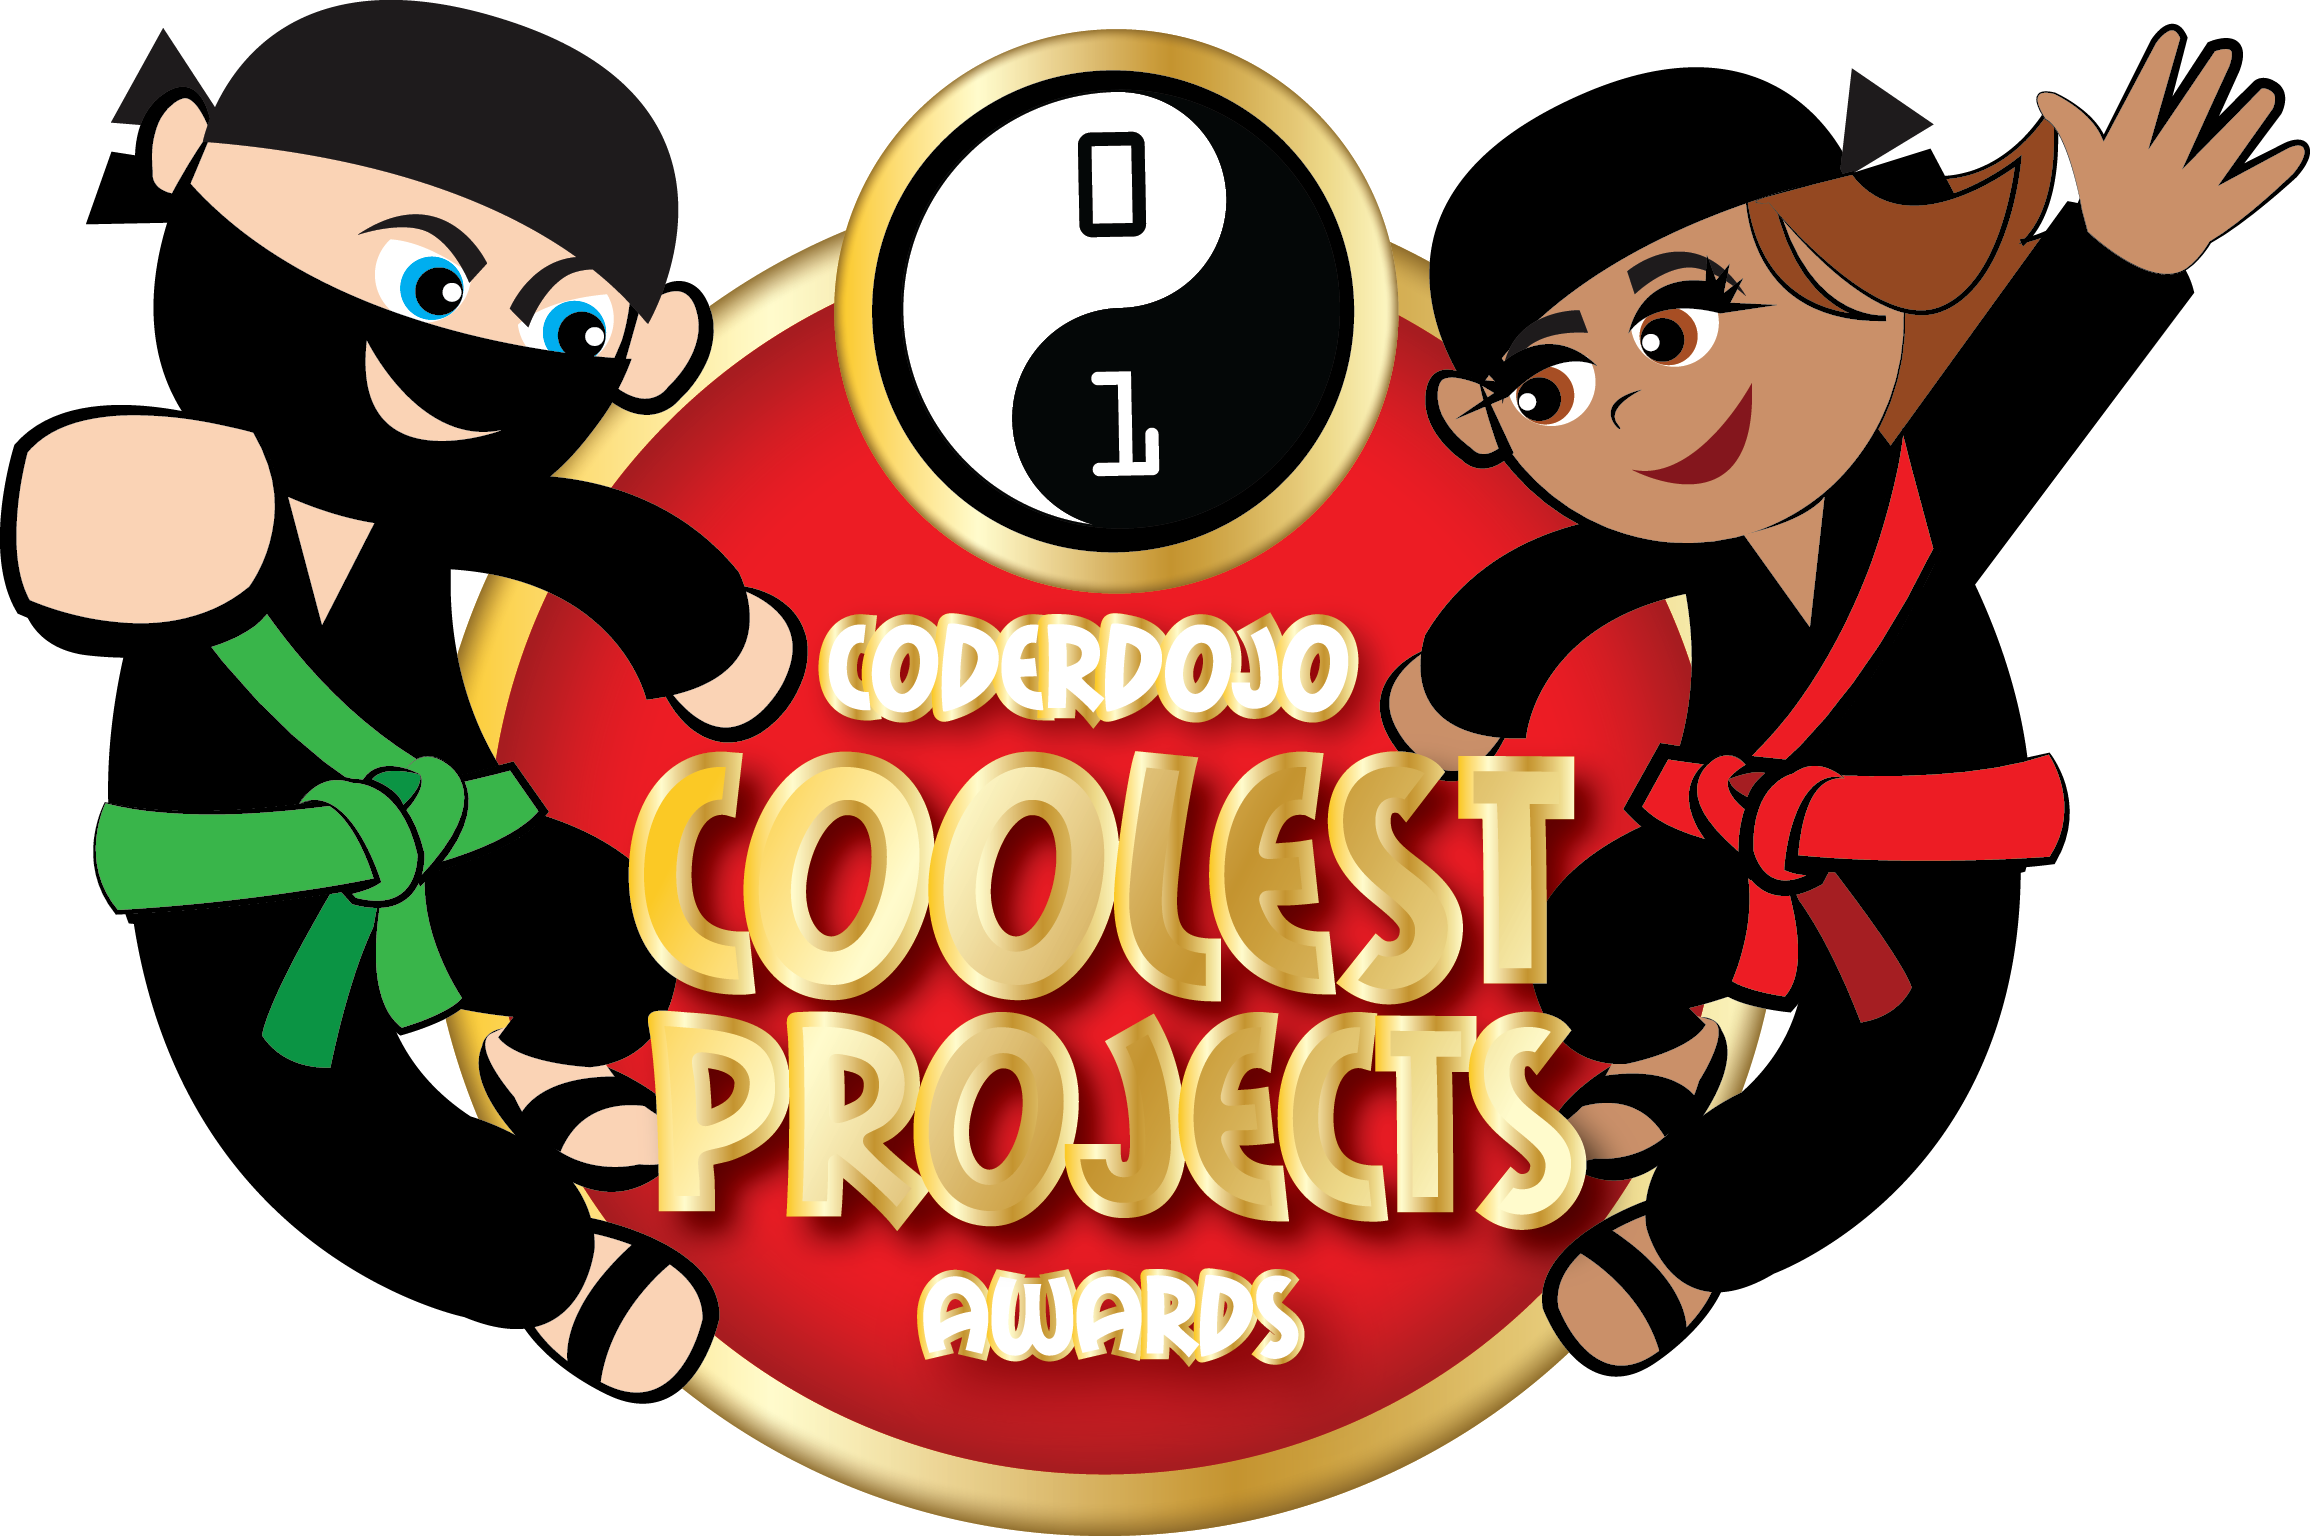 YoungCoolestProjectAwards